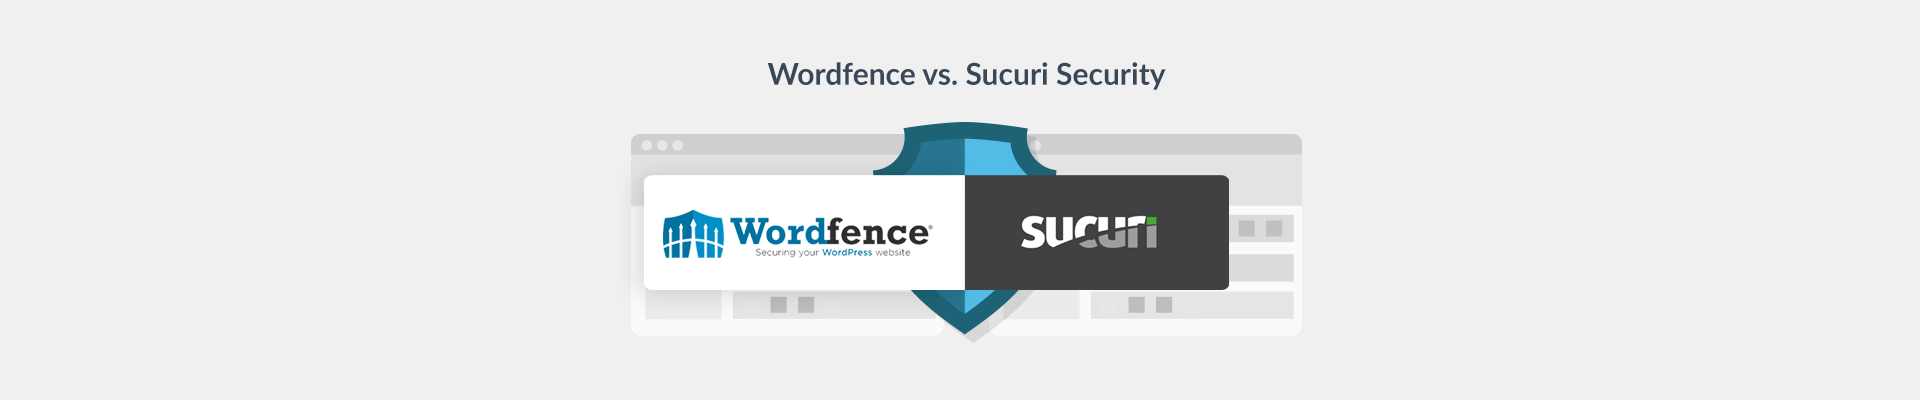 Wordfence vs Sucuri comparison - Plesk